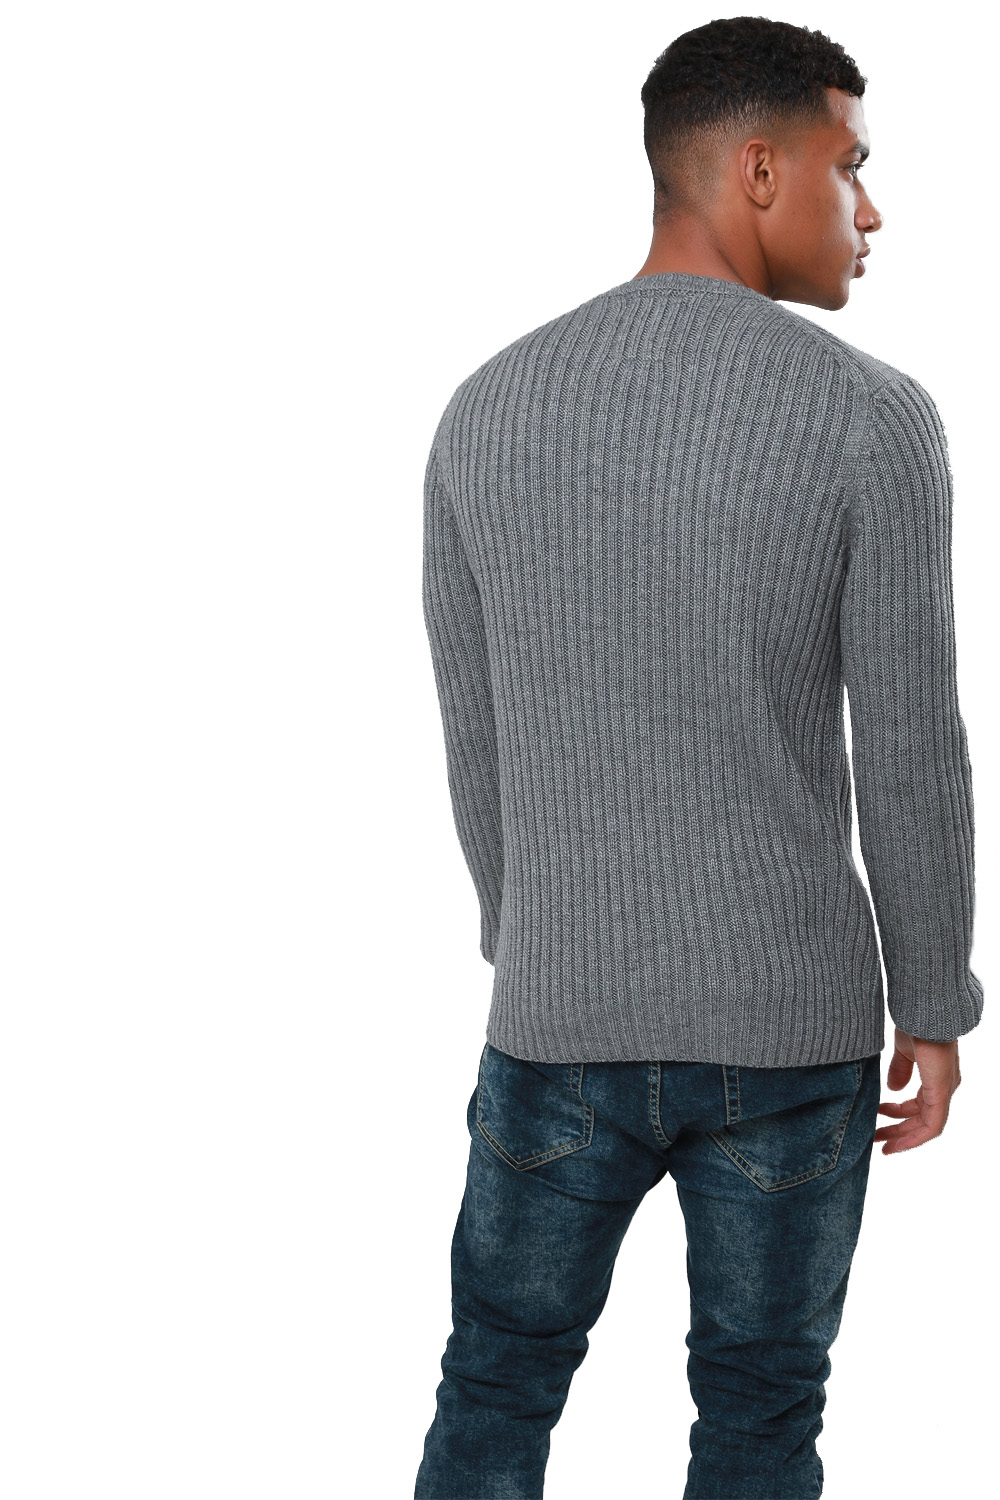 Threadbare-Mens-Saltbush-Jumper-Crew-Neck-Chunky-Cable-Knit-Wool-Blend-Sweater thumbnail 9